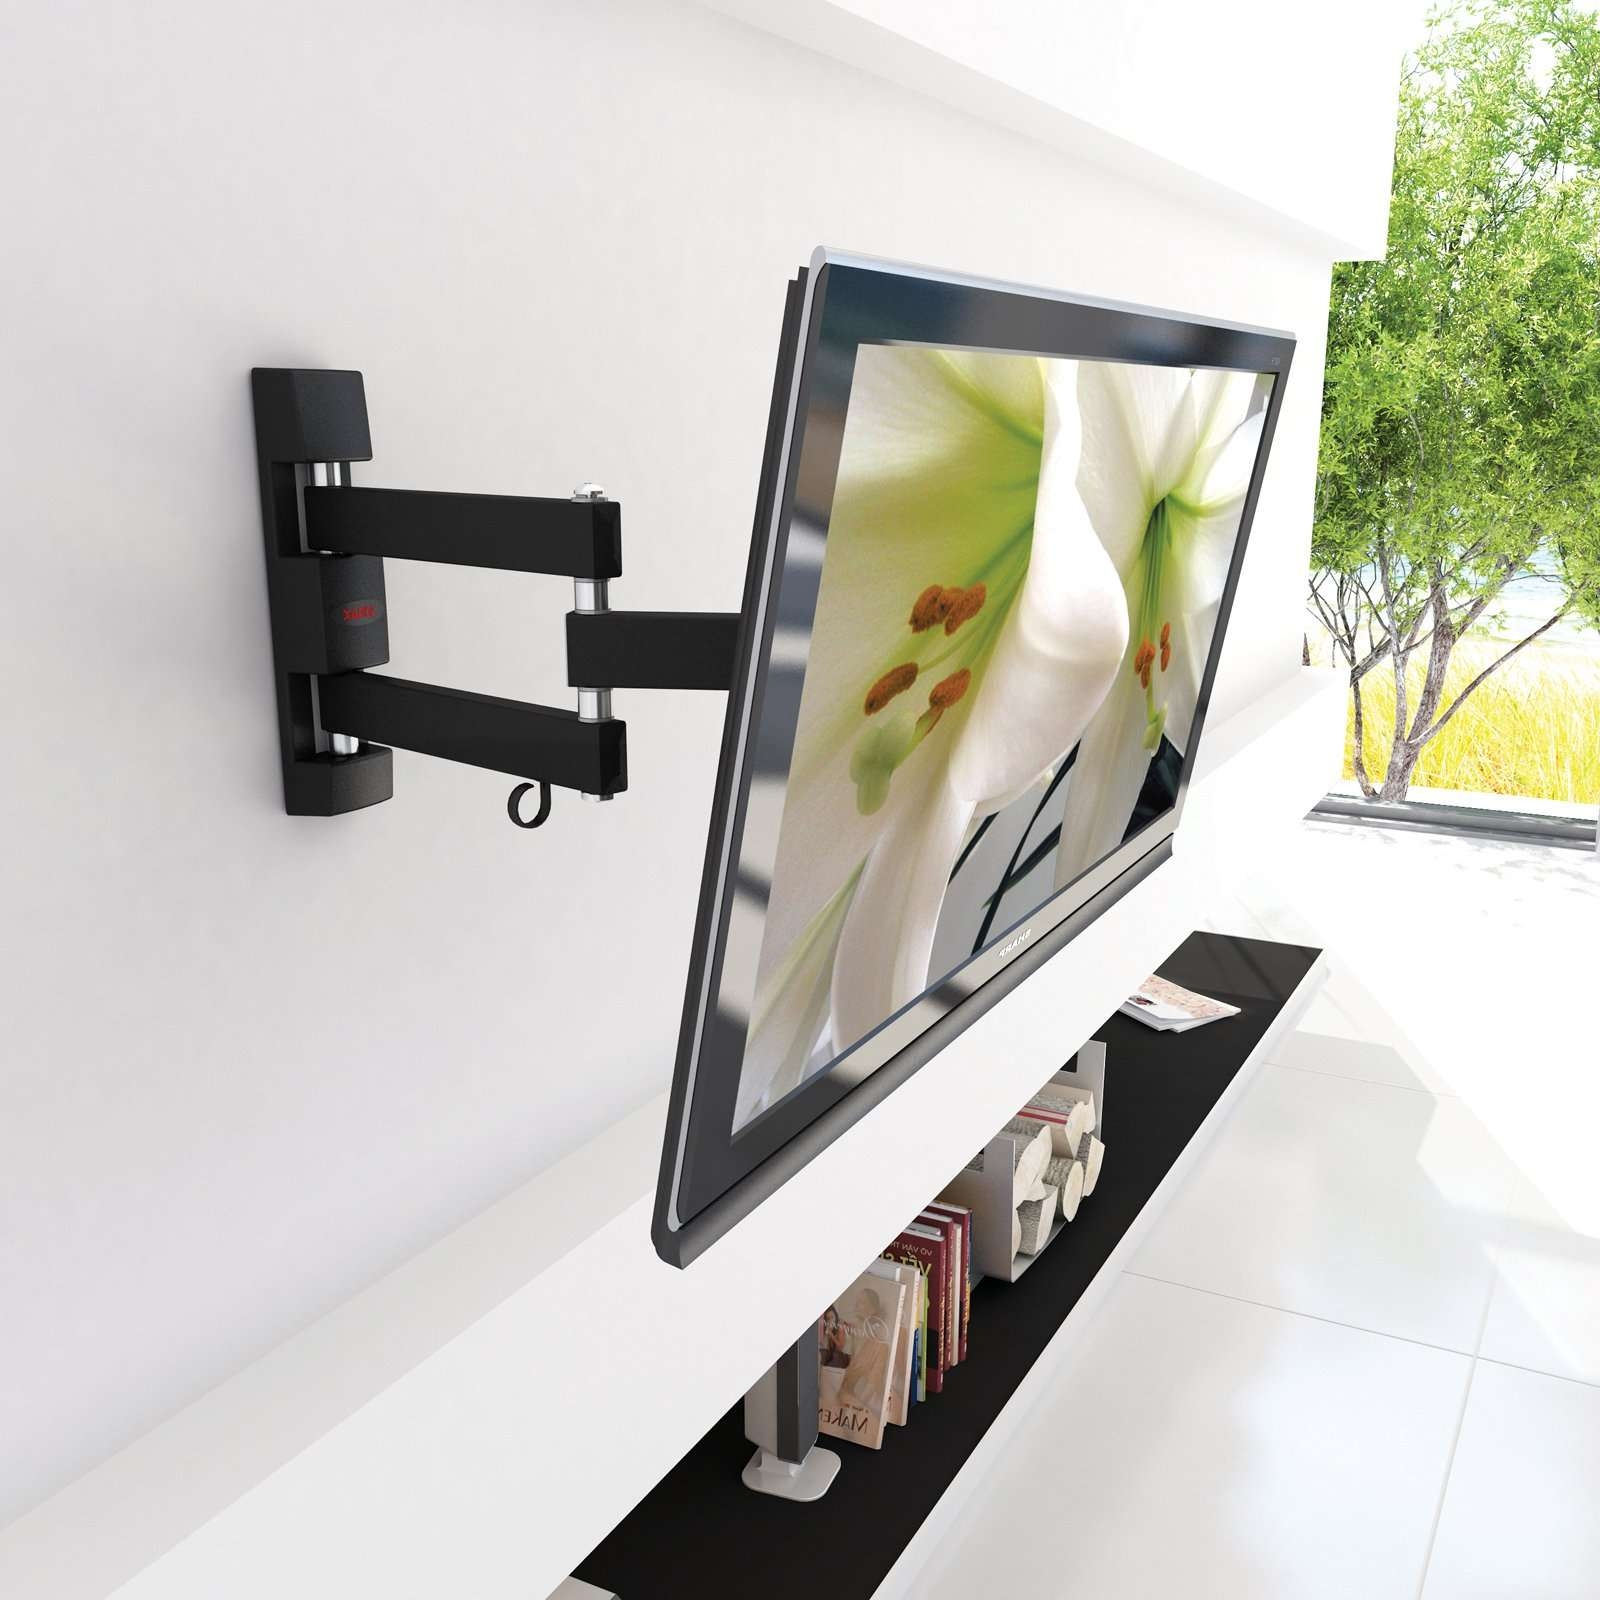 Furinno Modern Tv Stand With Wall Mount Bracket | Hayneedle With Regard To Wall Mount Adjustable Tv Stands (View 4 of 20)